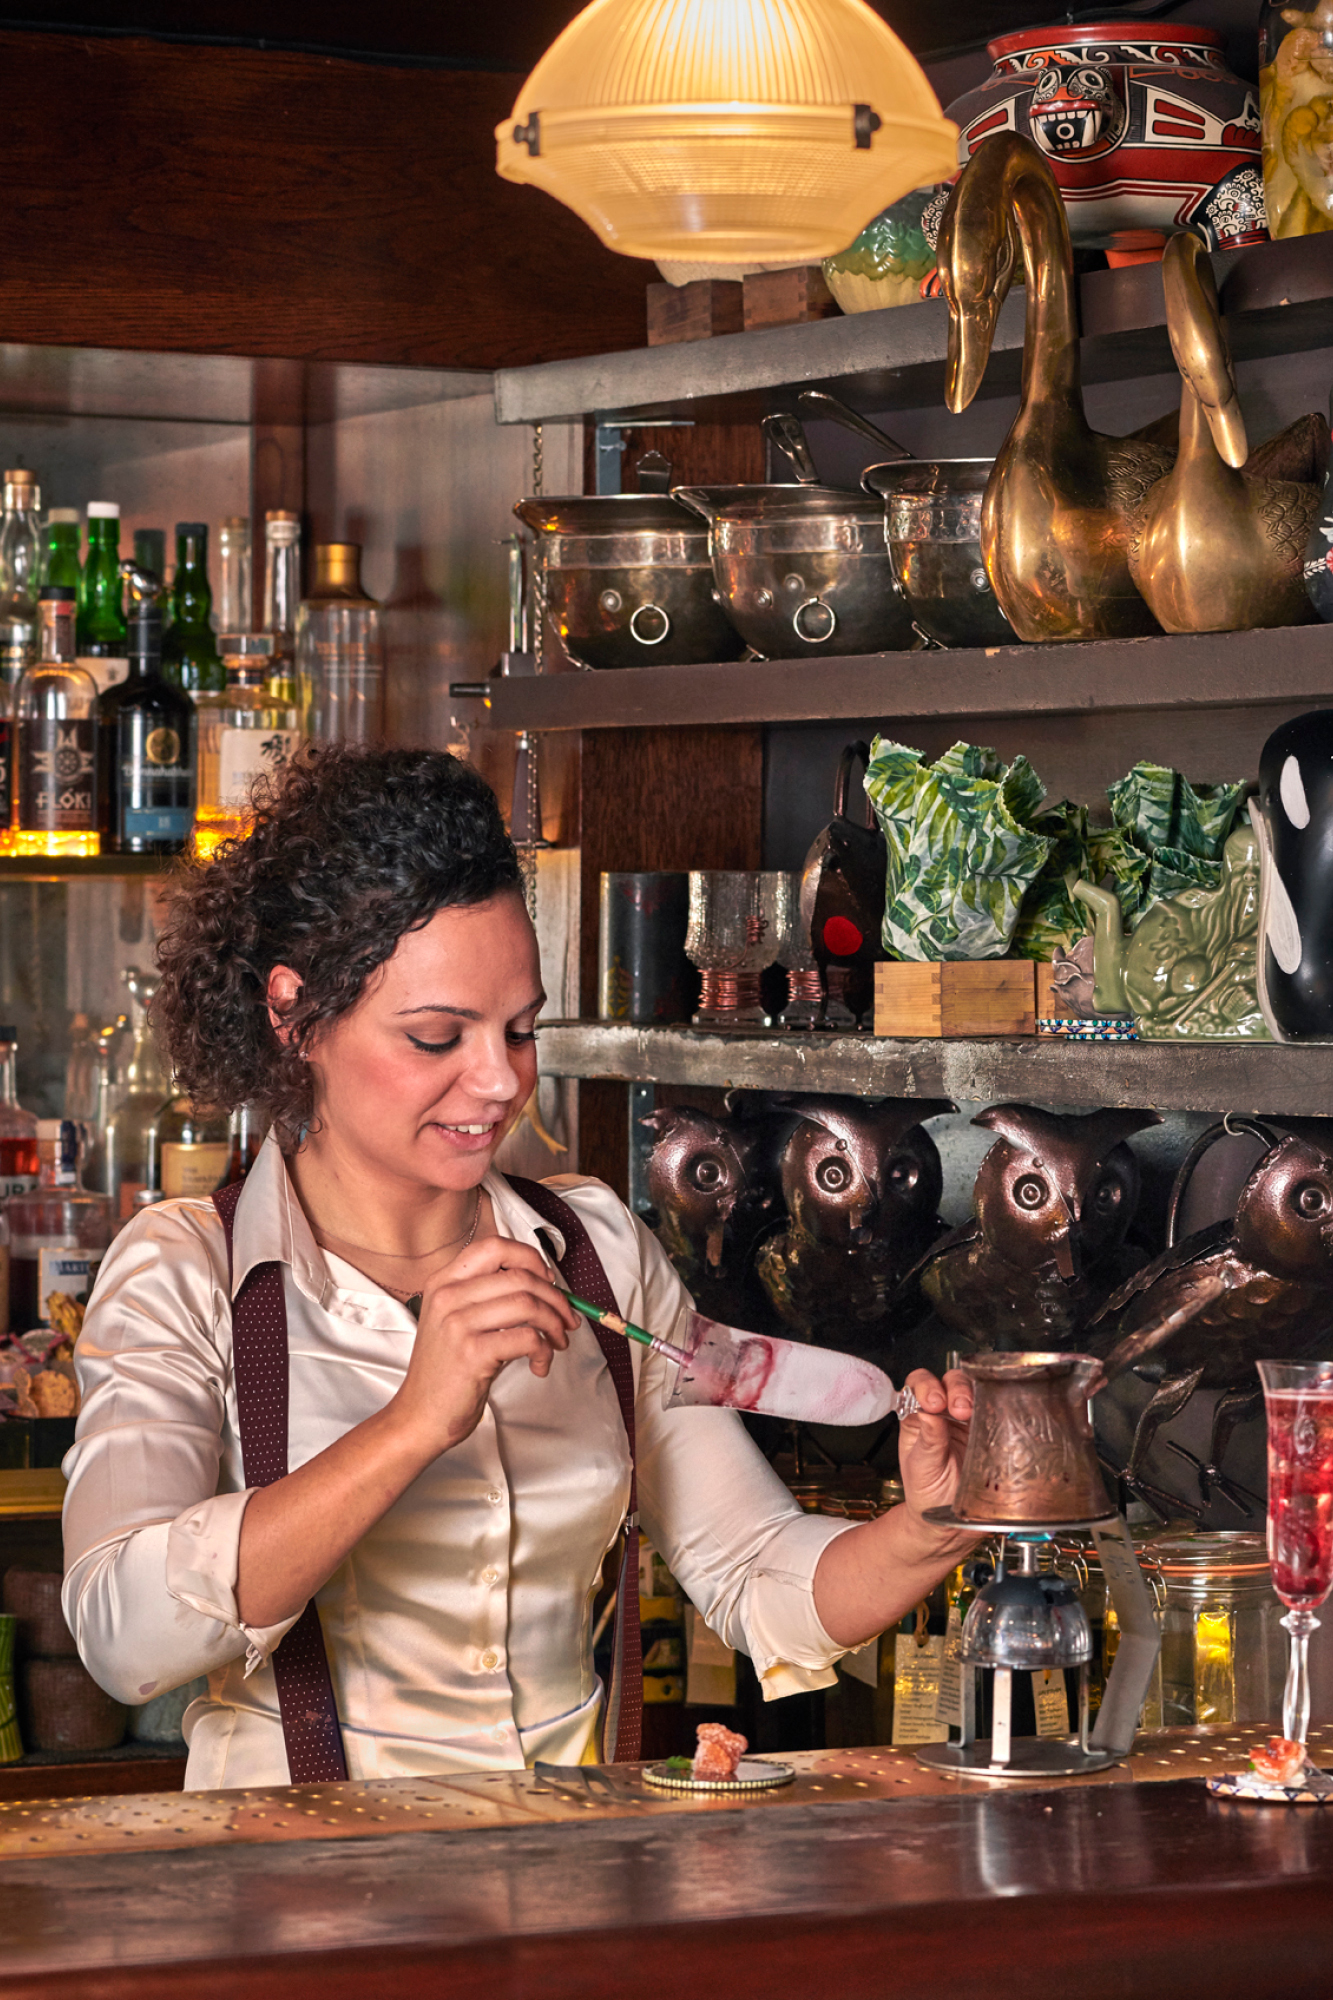 Françoise Peretti and the Champagne Bureau has been working with bar tenders to develop new ways of serving champagne